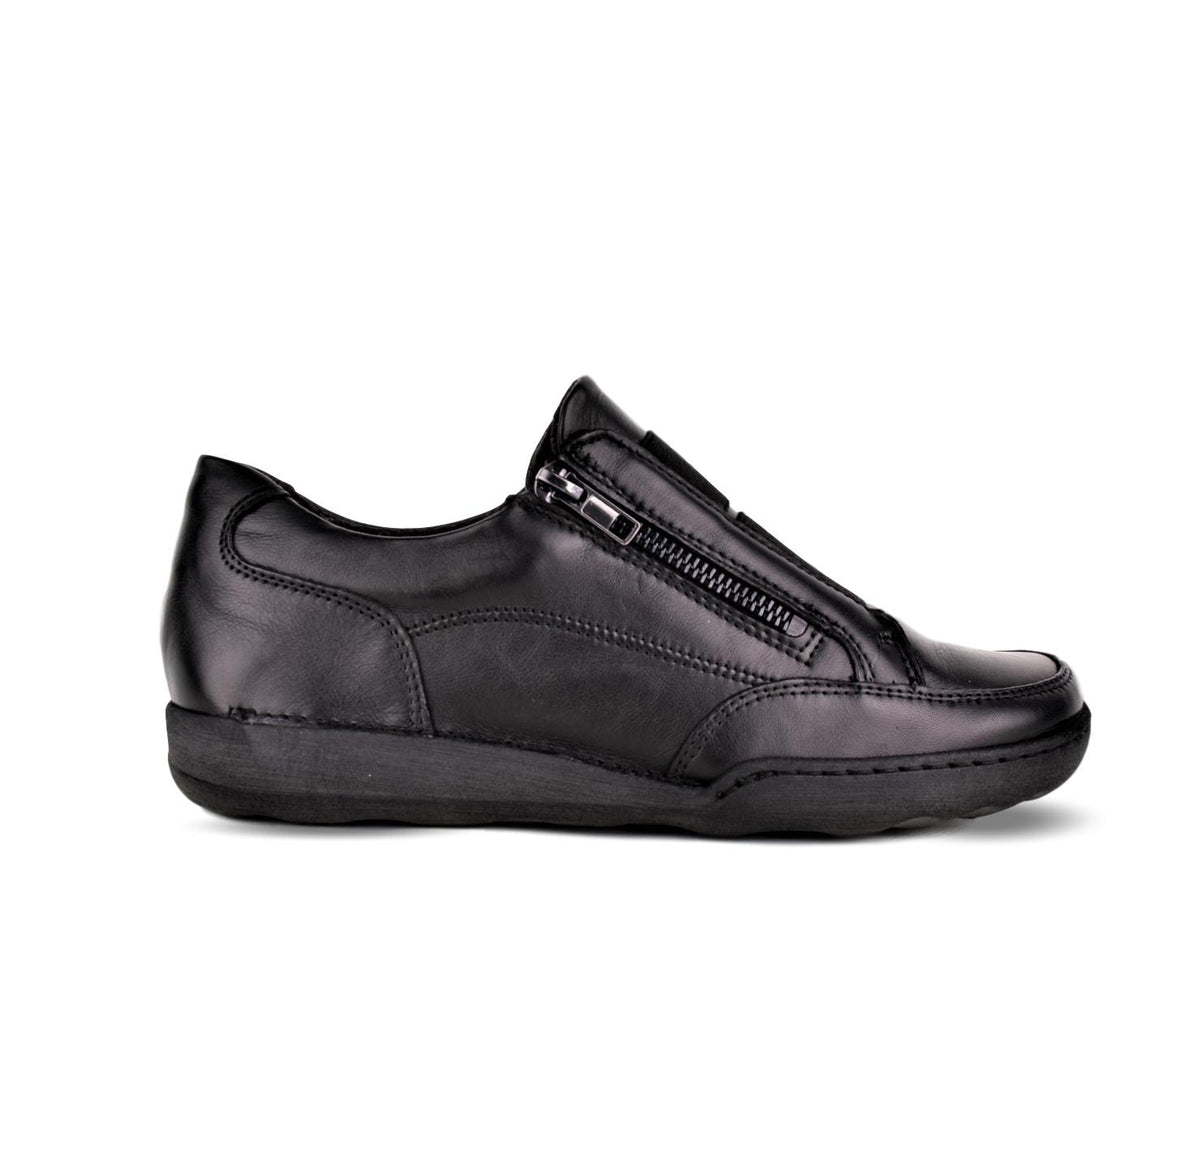 BRIA - Relax Closed Shoe Black